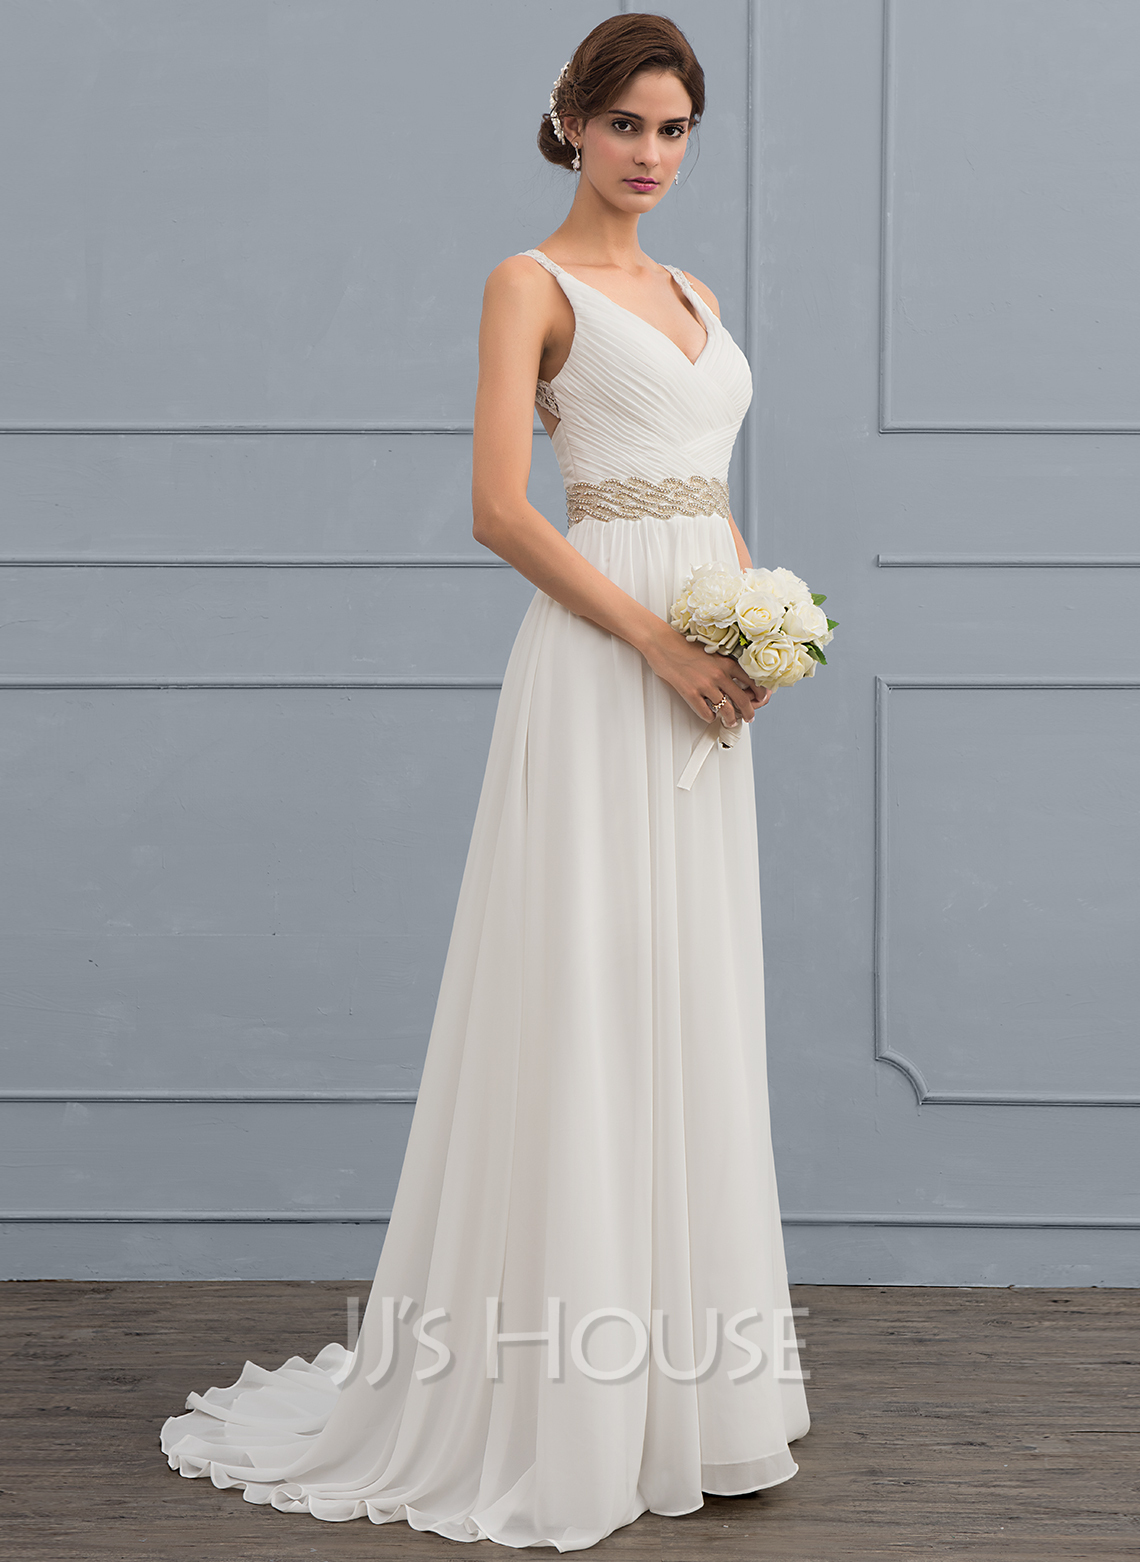 A Line V Neck Sweep Train Chiffon Wedding Dress With Ruffle Lace Beading Sequins 002118433 Jj S House,Wedding Reception Simple Nikkah Dresses For Bride